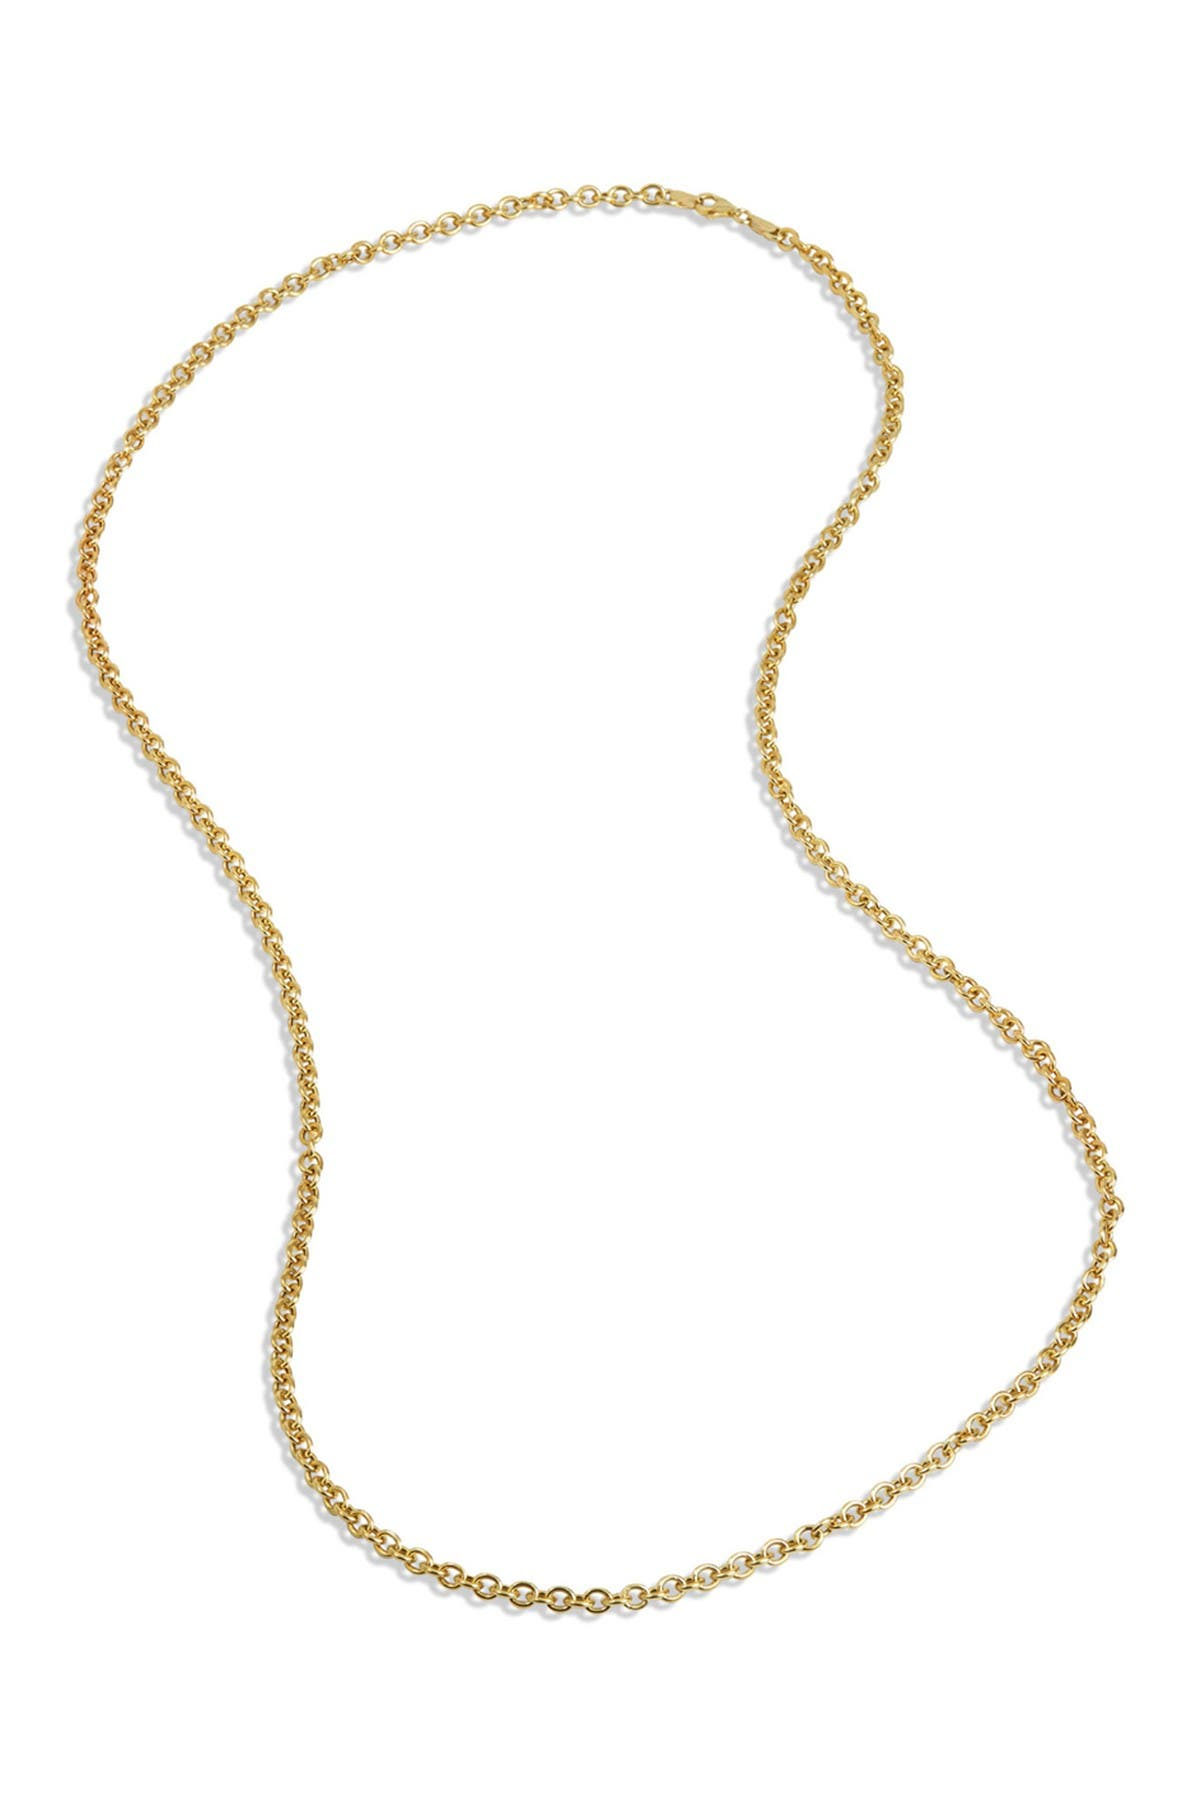 Savvy Cie 18K Gold Vermeil Italian Link Chain Necklace at Nordstrom Rack